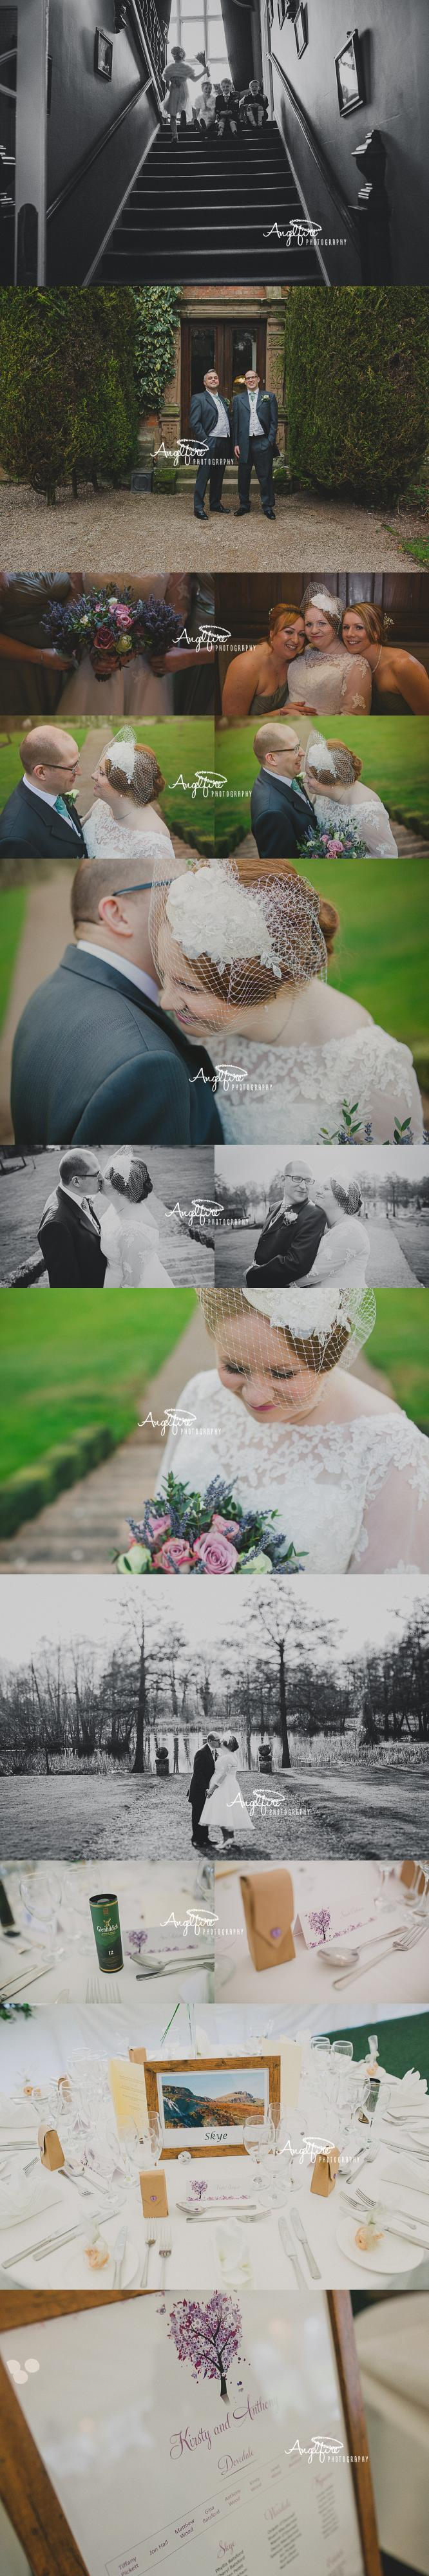 West Midlands Wedding Photographer | Angelfire Photography | www.angelfirephotography.co.uk 9